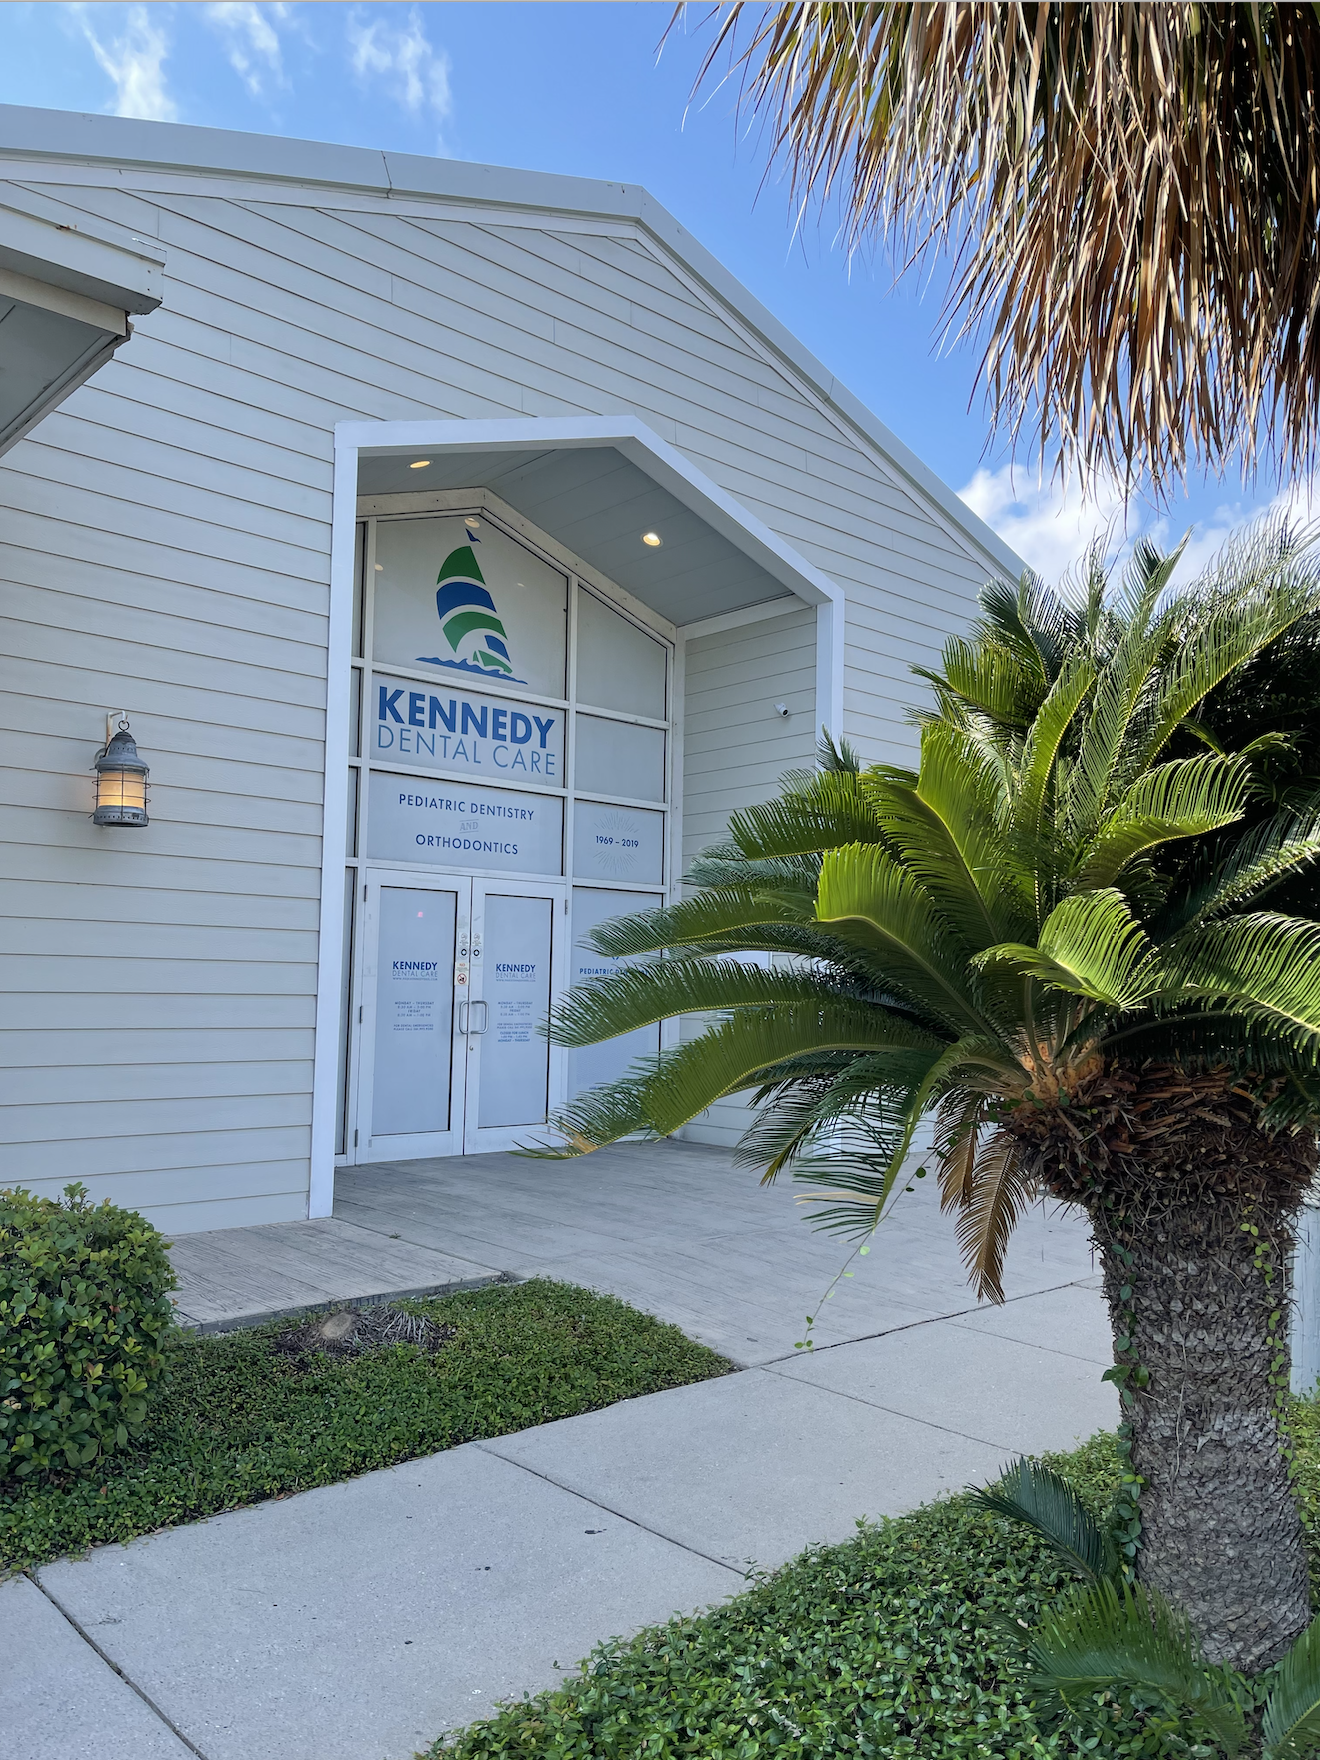 Image of the outside of the Kennedy Dental Offices on Saratoga Blvd in Corpus Christi